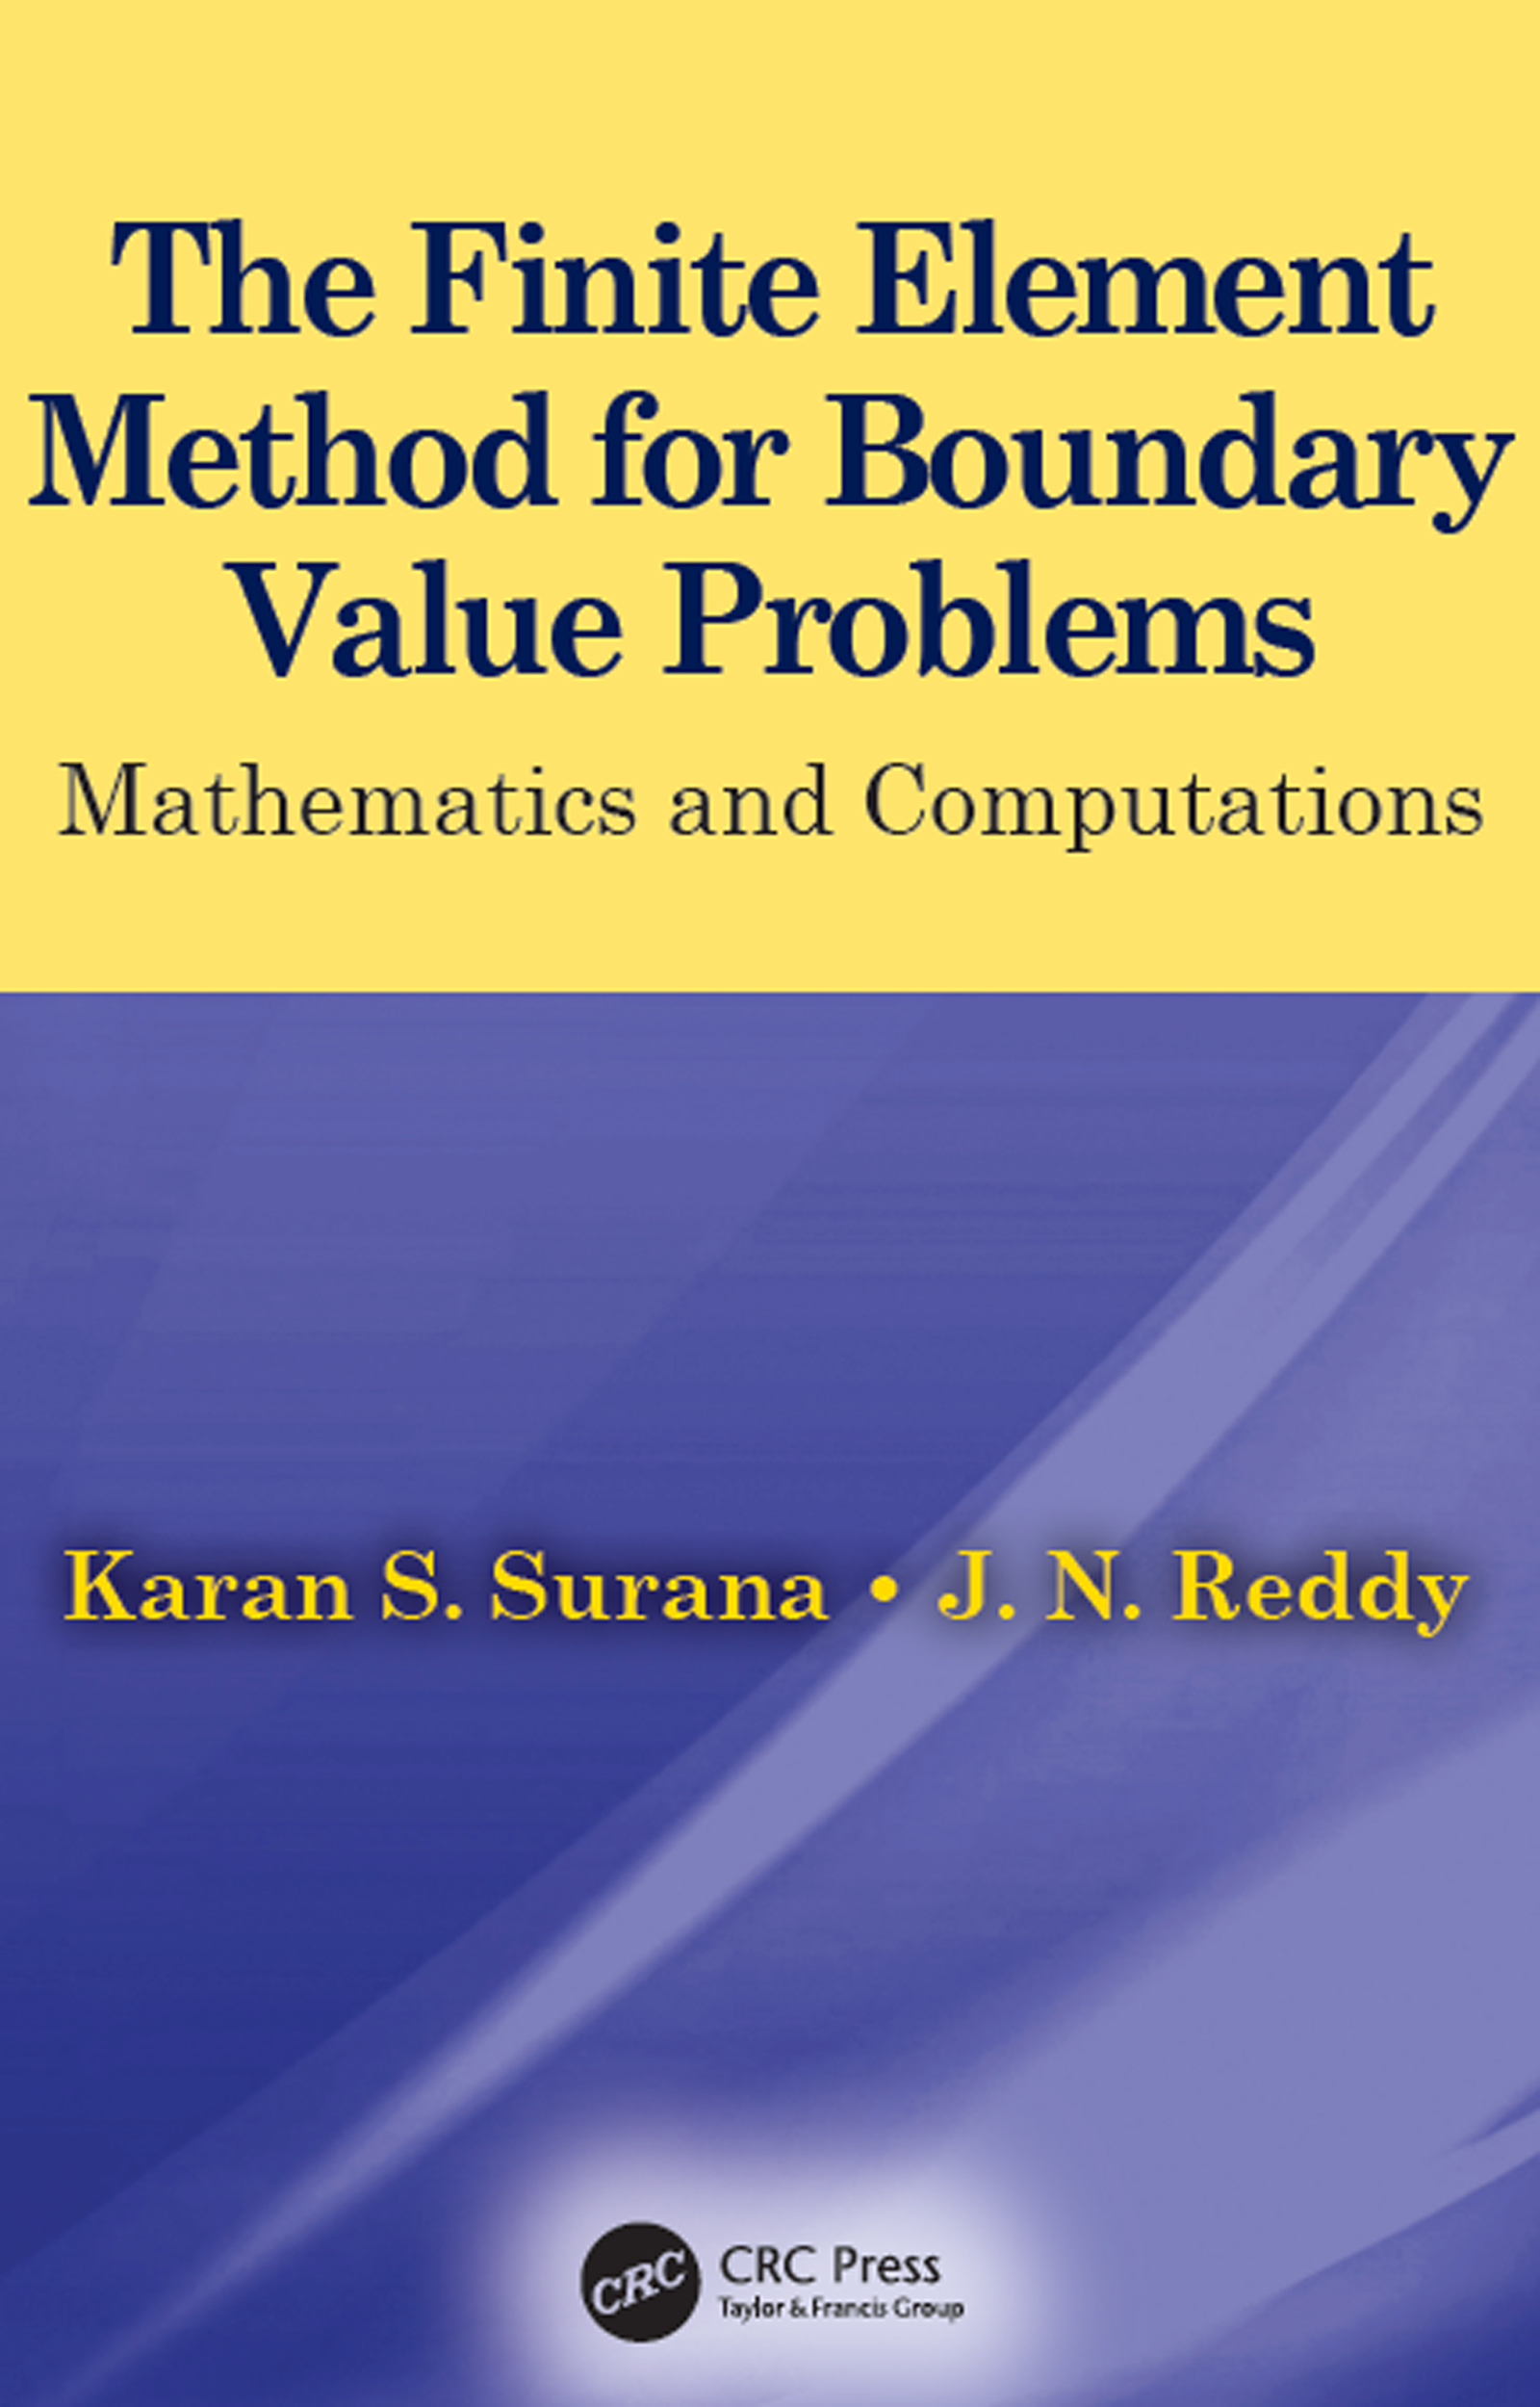 The Finite Element Method for Boundary Value Problems: Mathematics and Computations book cover